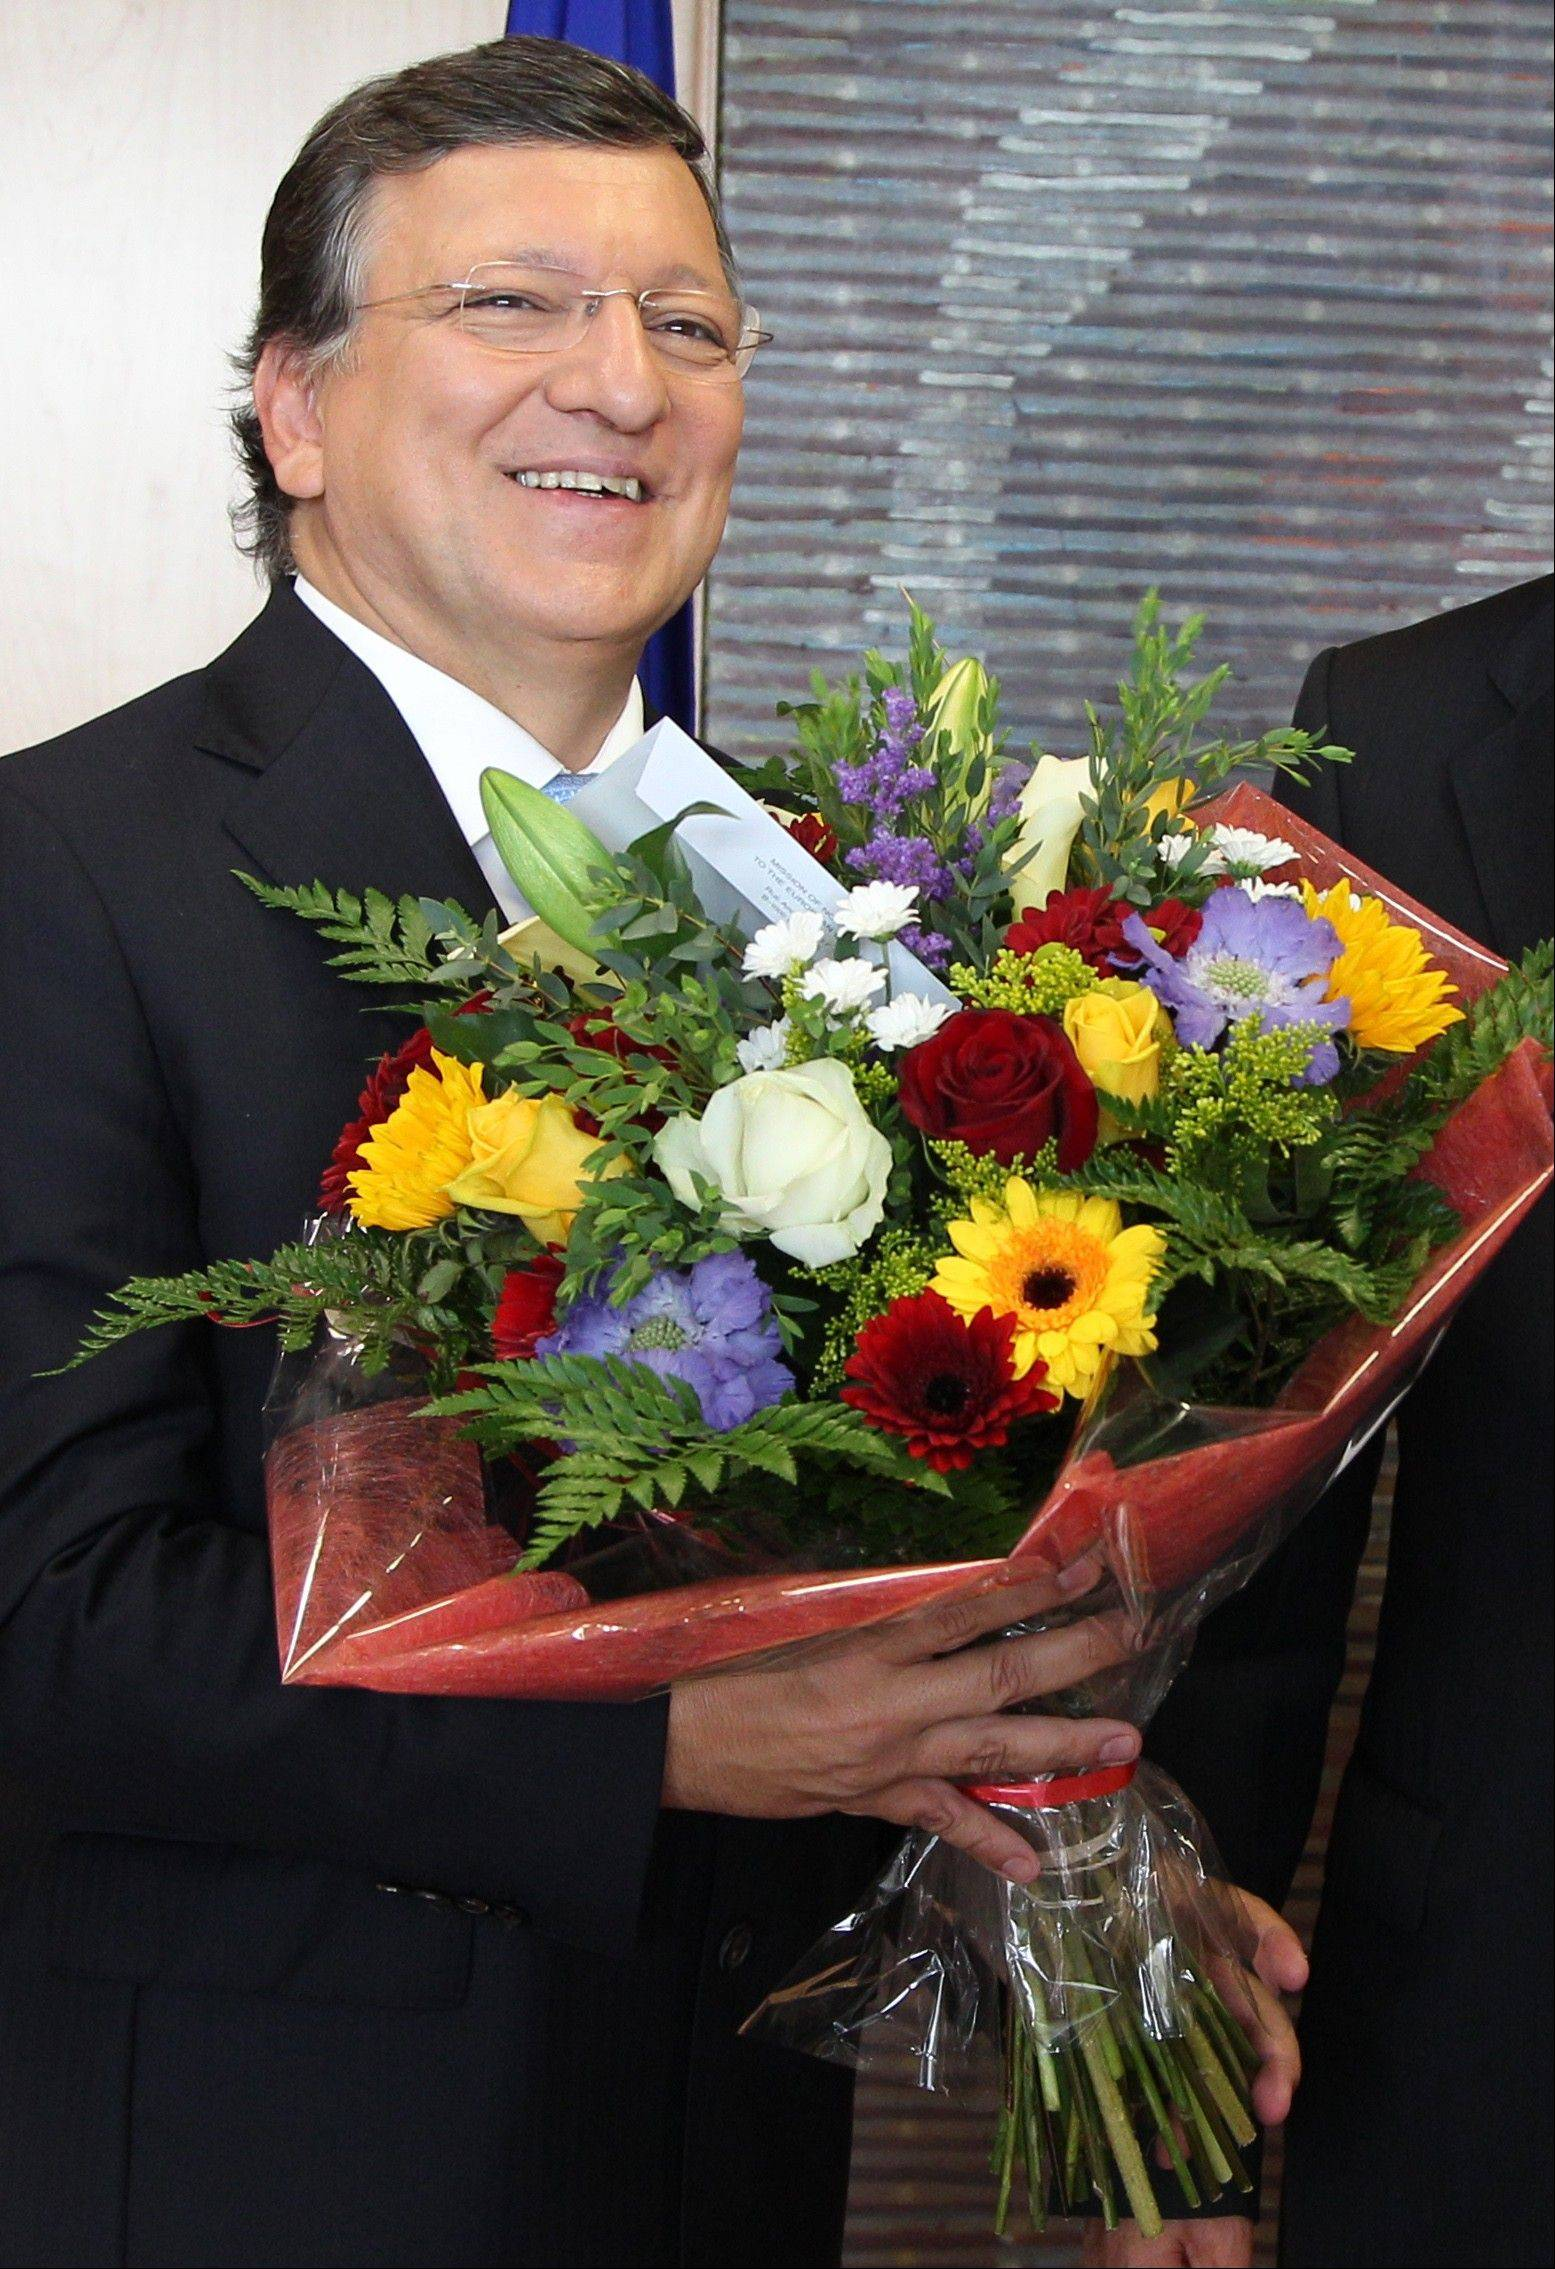 European Commission President Jose Manuel Barroso reacts, as he received flowers by Norway�s ambassador to the EU Atle Leikvoll, after the 2012 Nobel Peace Prize was given to the EU, at the European Commission headquarters in Brussels, Friday.